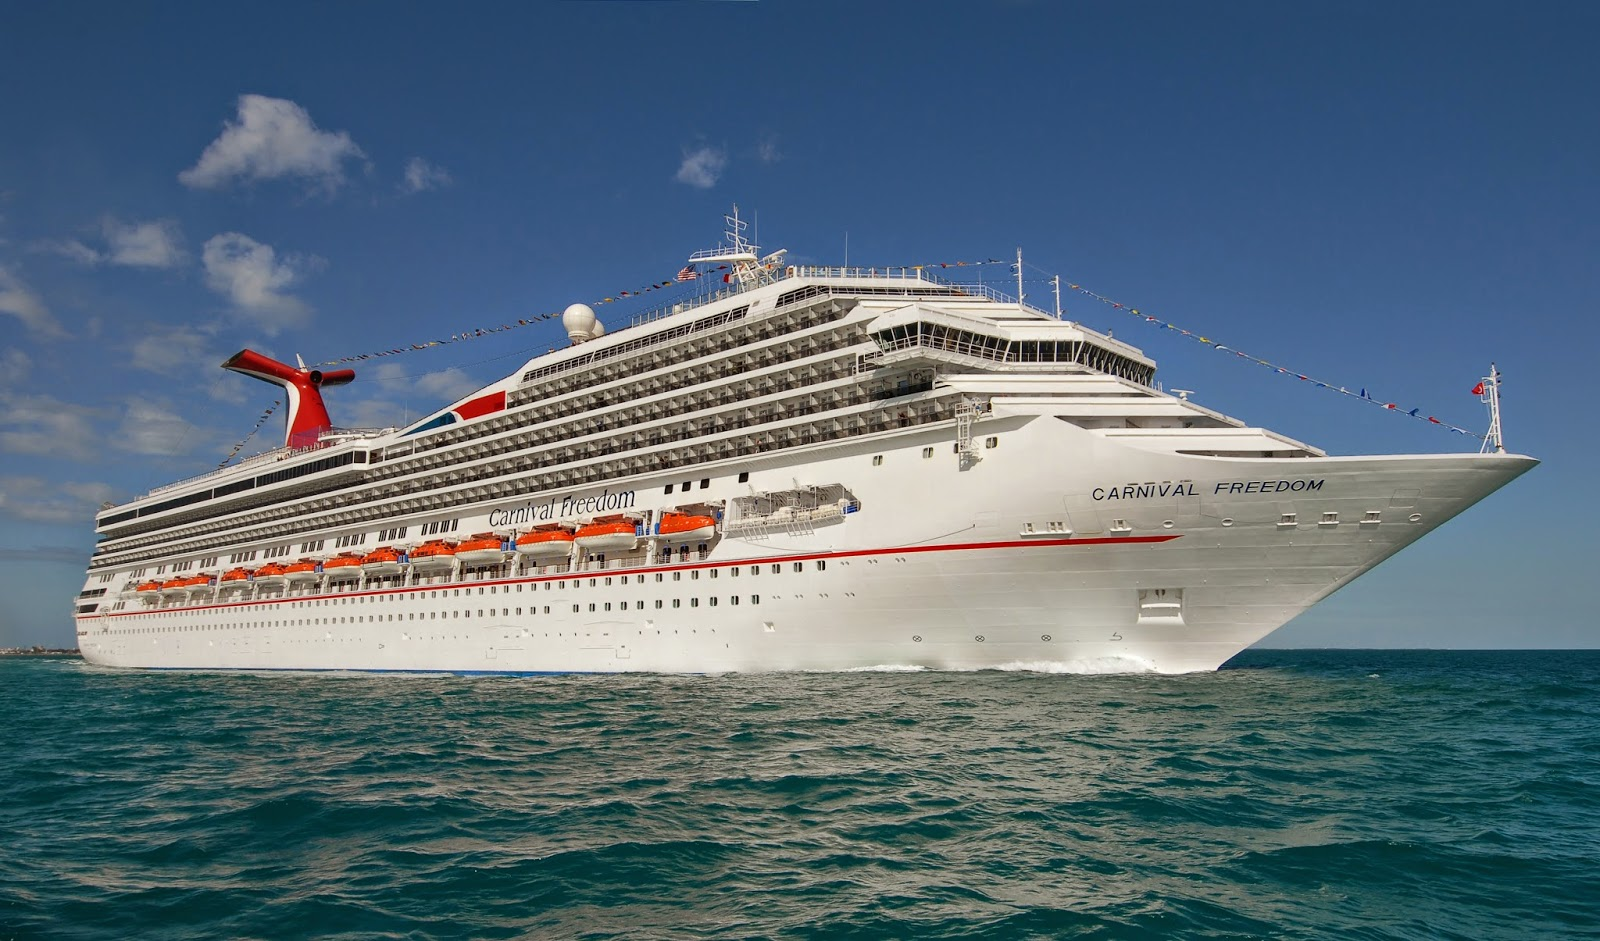 Ray39s Cruise Blog Carnival Freedom Review